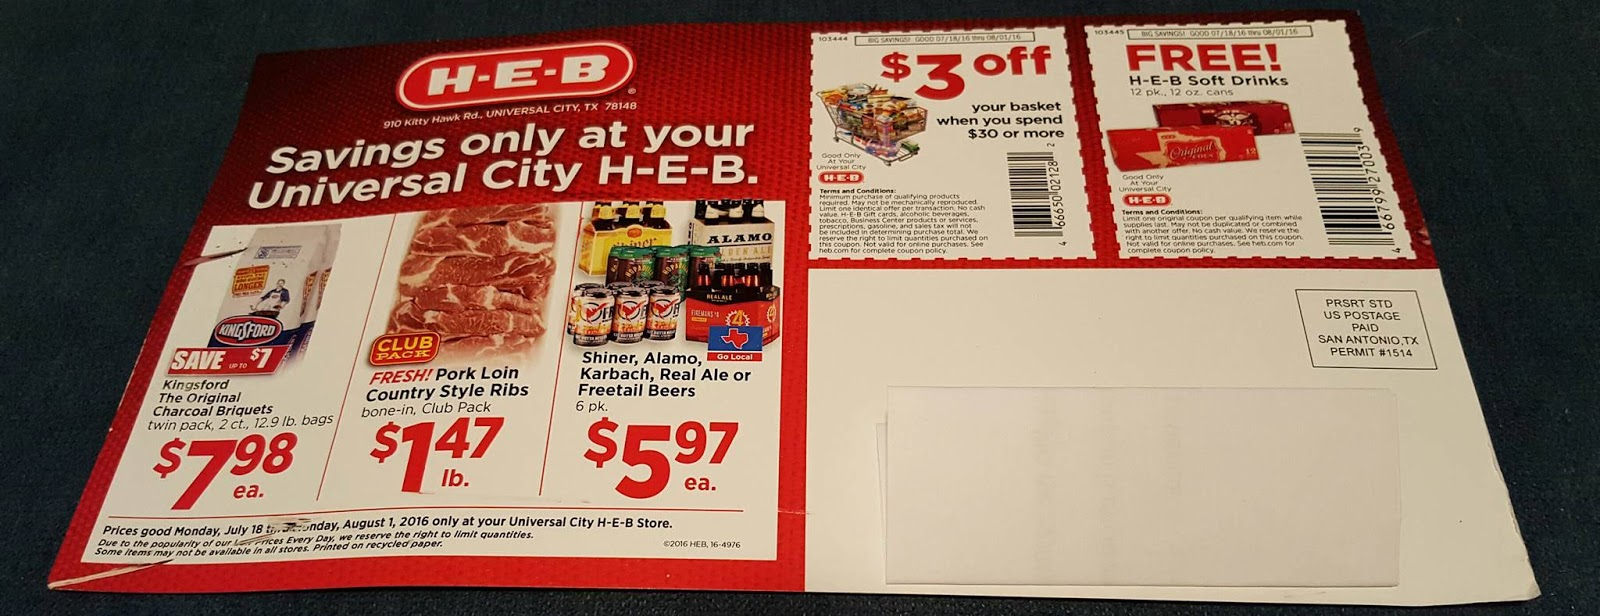 Heb coupon code